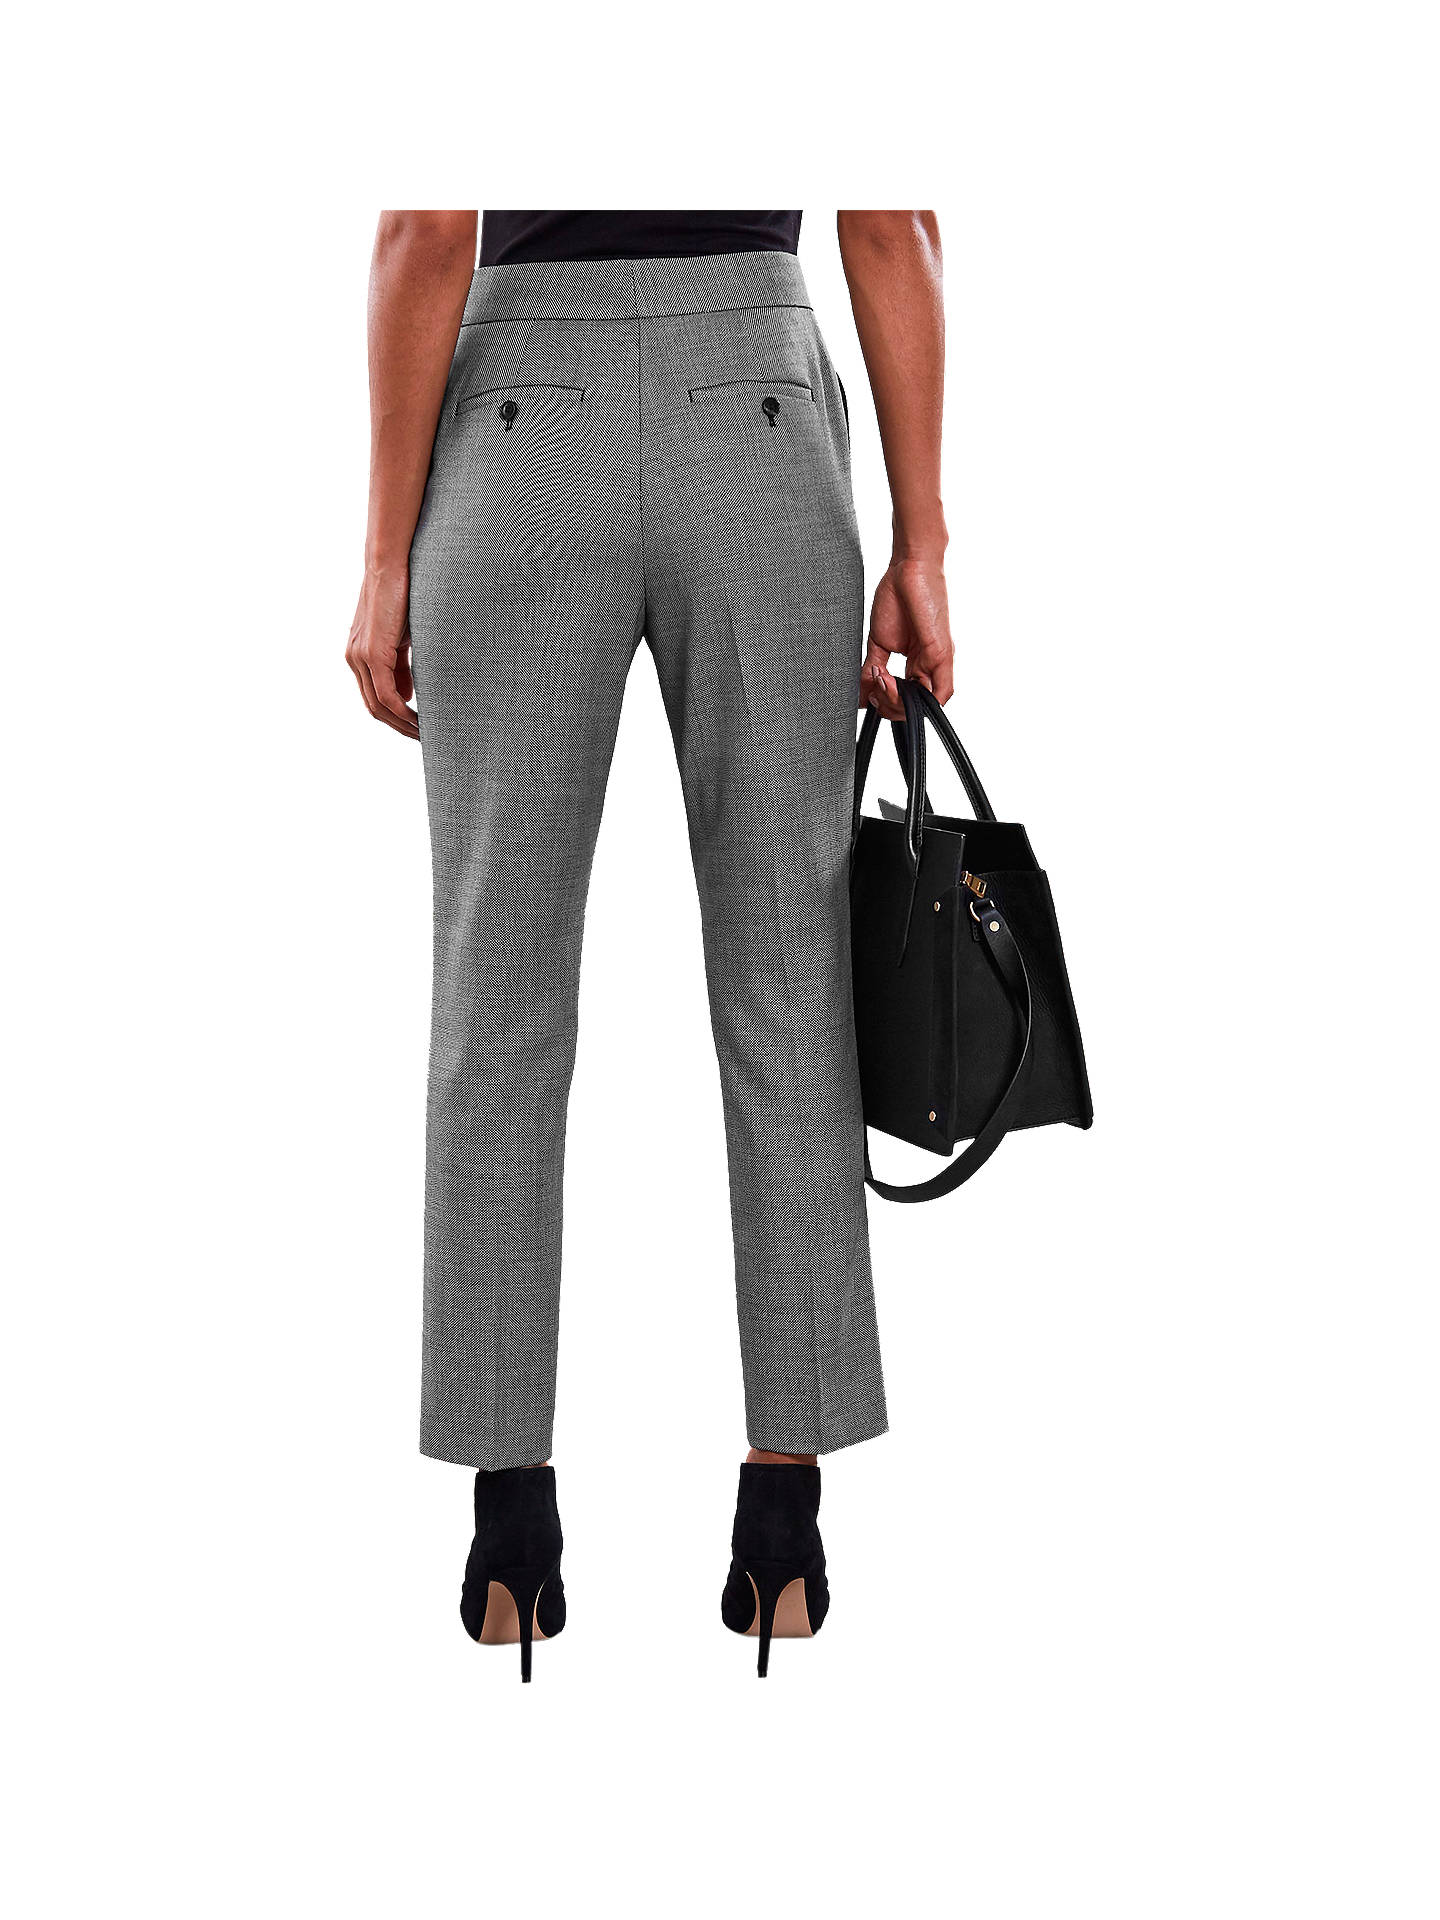 BuyReiss Alber Slim Trousers, Grey, 6 Online at johnlewis.com